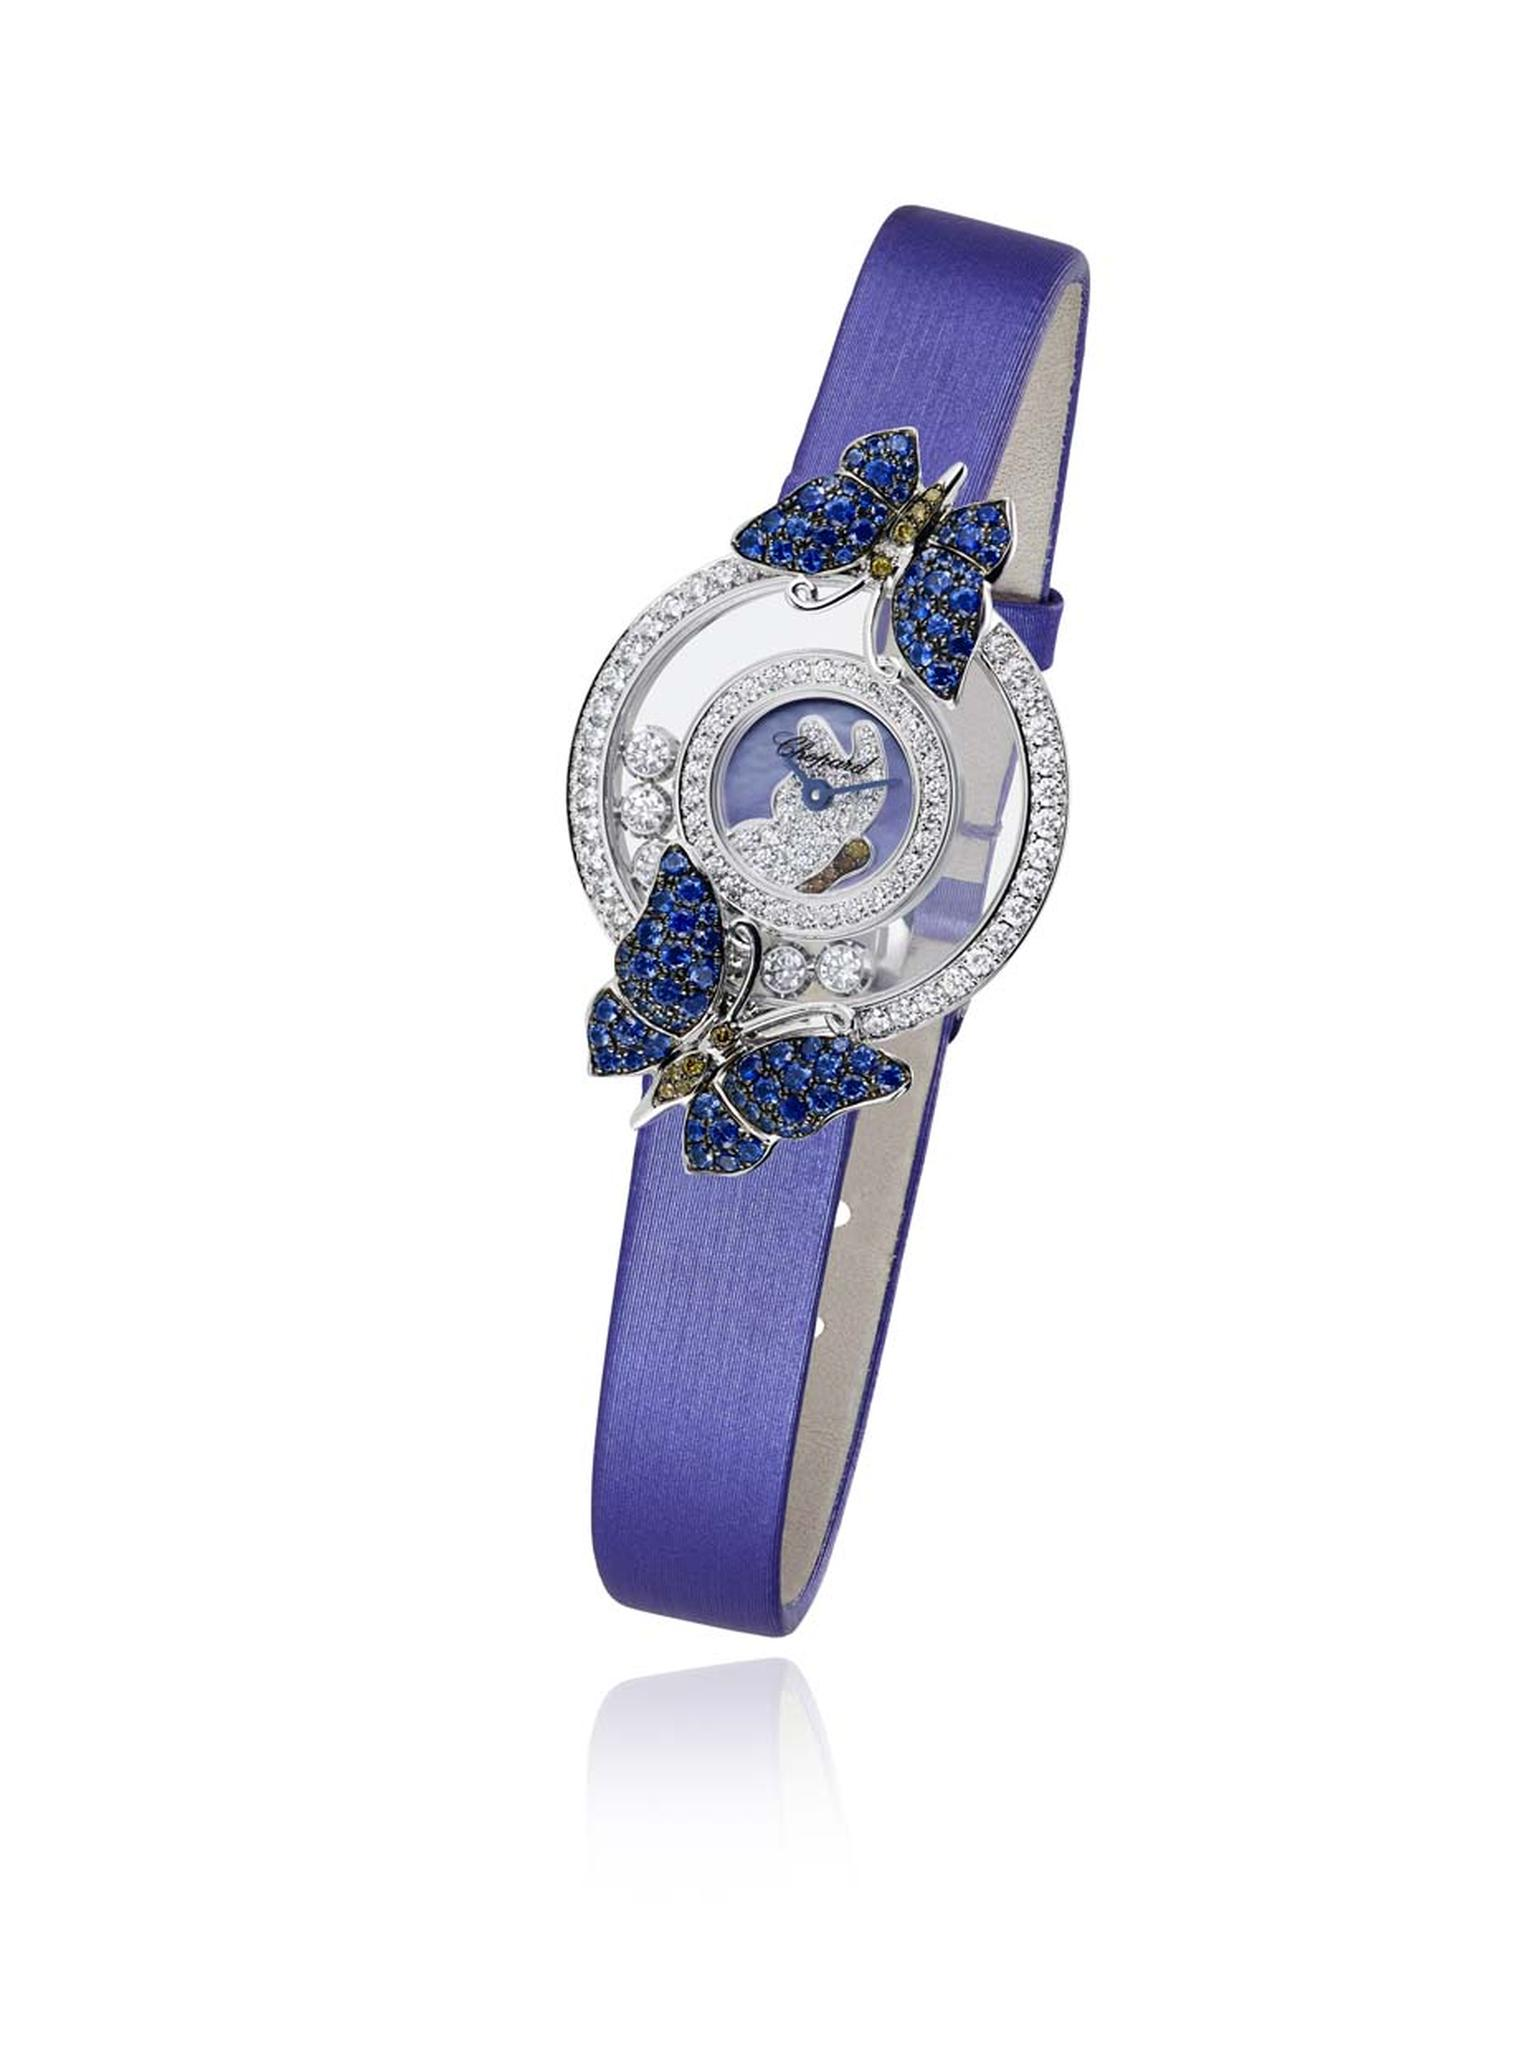 The Chopard Happy Diamonds Butterflies watch features two butterflies decorated with sapphires and brown diamonds, resting on the diamond-set case, with seven mobile diamonds twirling playfully in between